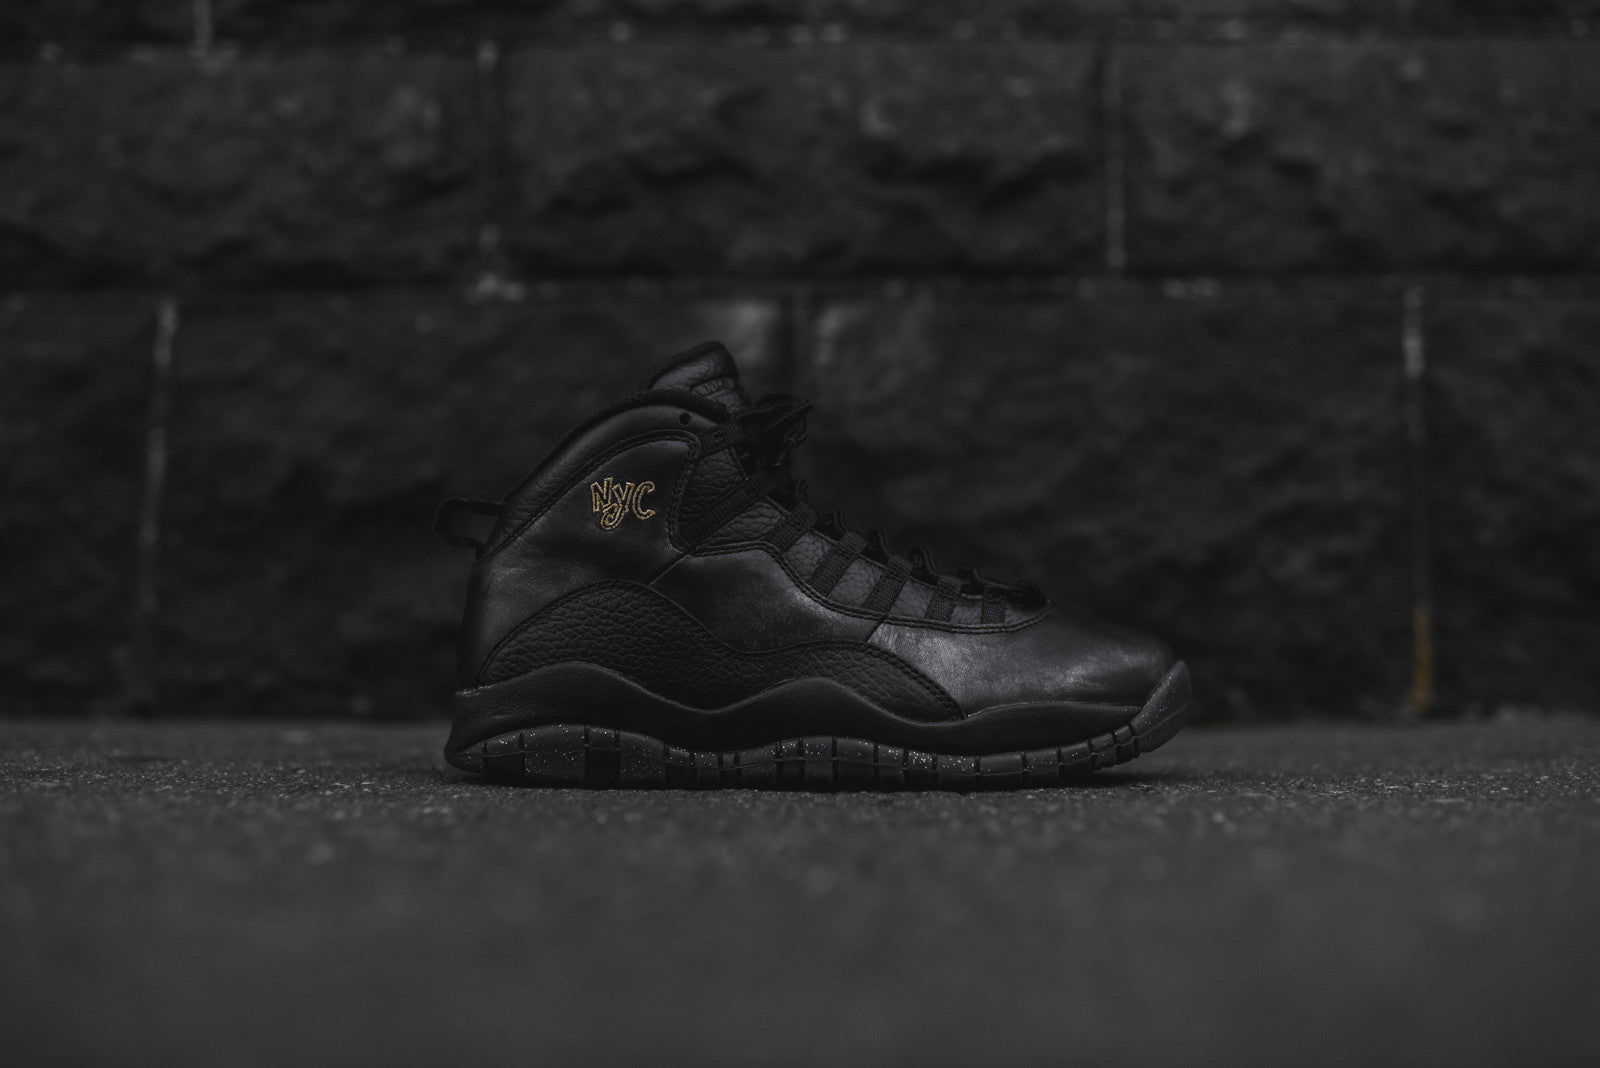 Nike Air Jordan X Retro - NYC